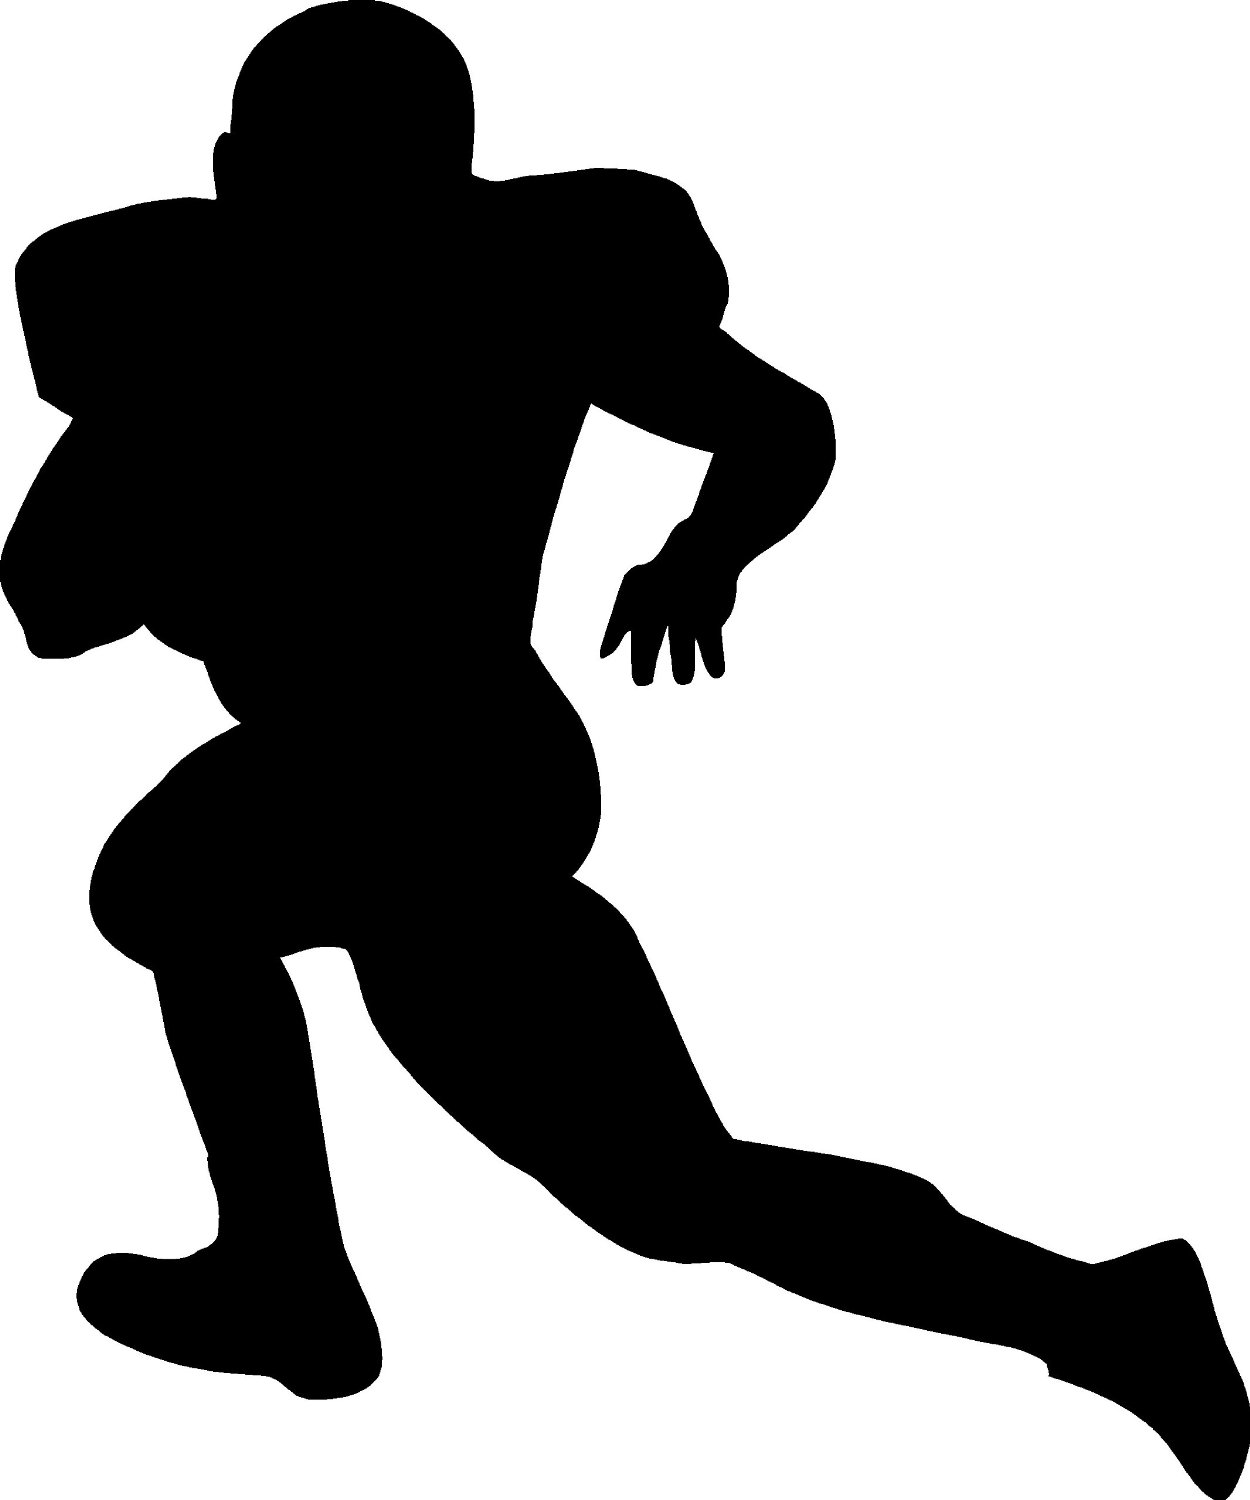 1250x1500 American Football Player Silhouette Clipart 20 Adorable Fancy